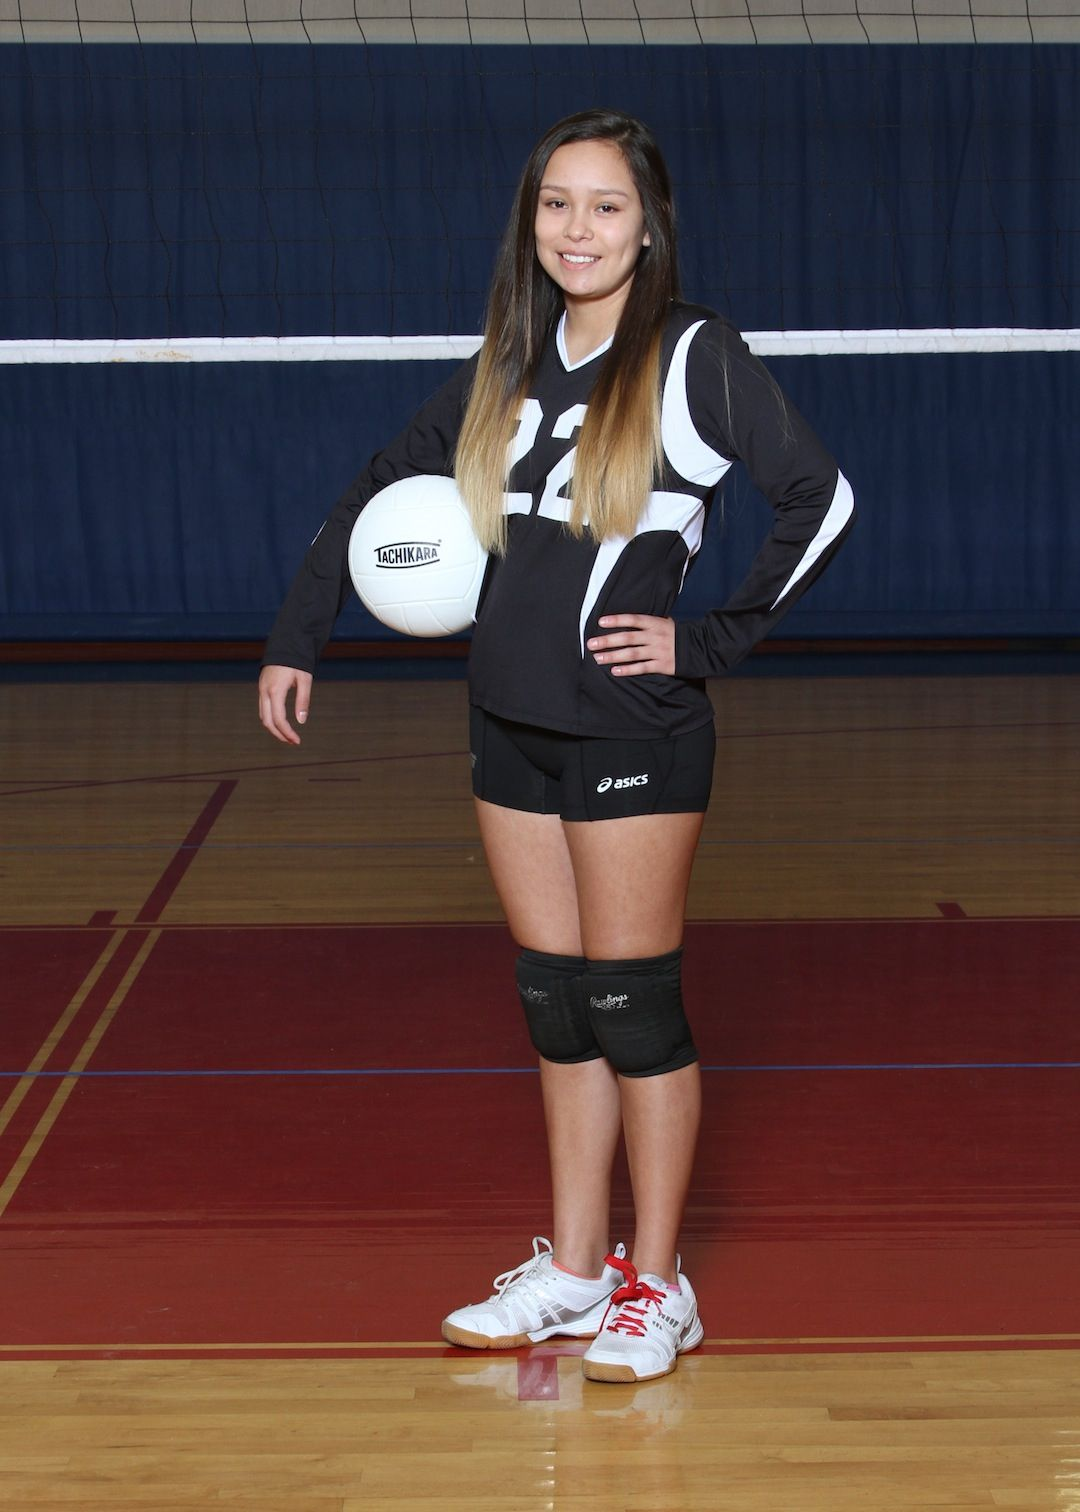 My Topflight Volleyball Picture Volleyball Pictures Volleyball Senior Pictures Senior Pictures Dresses